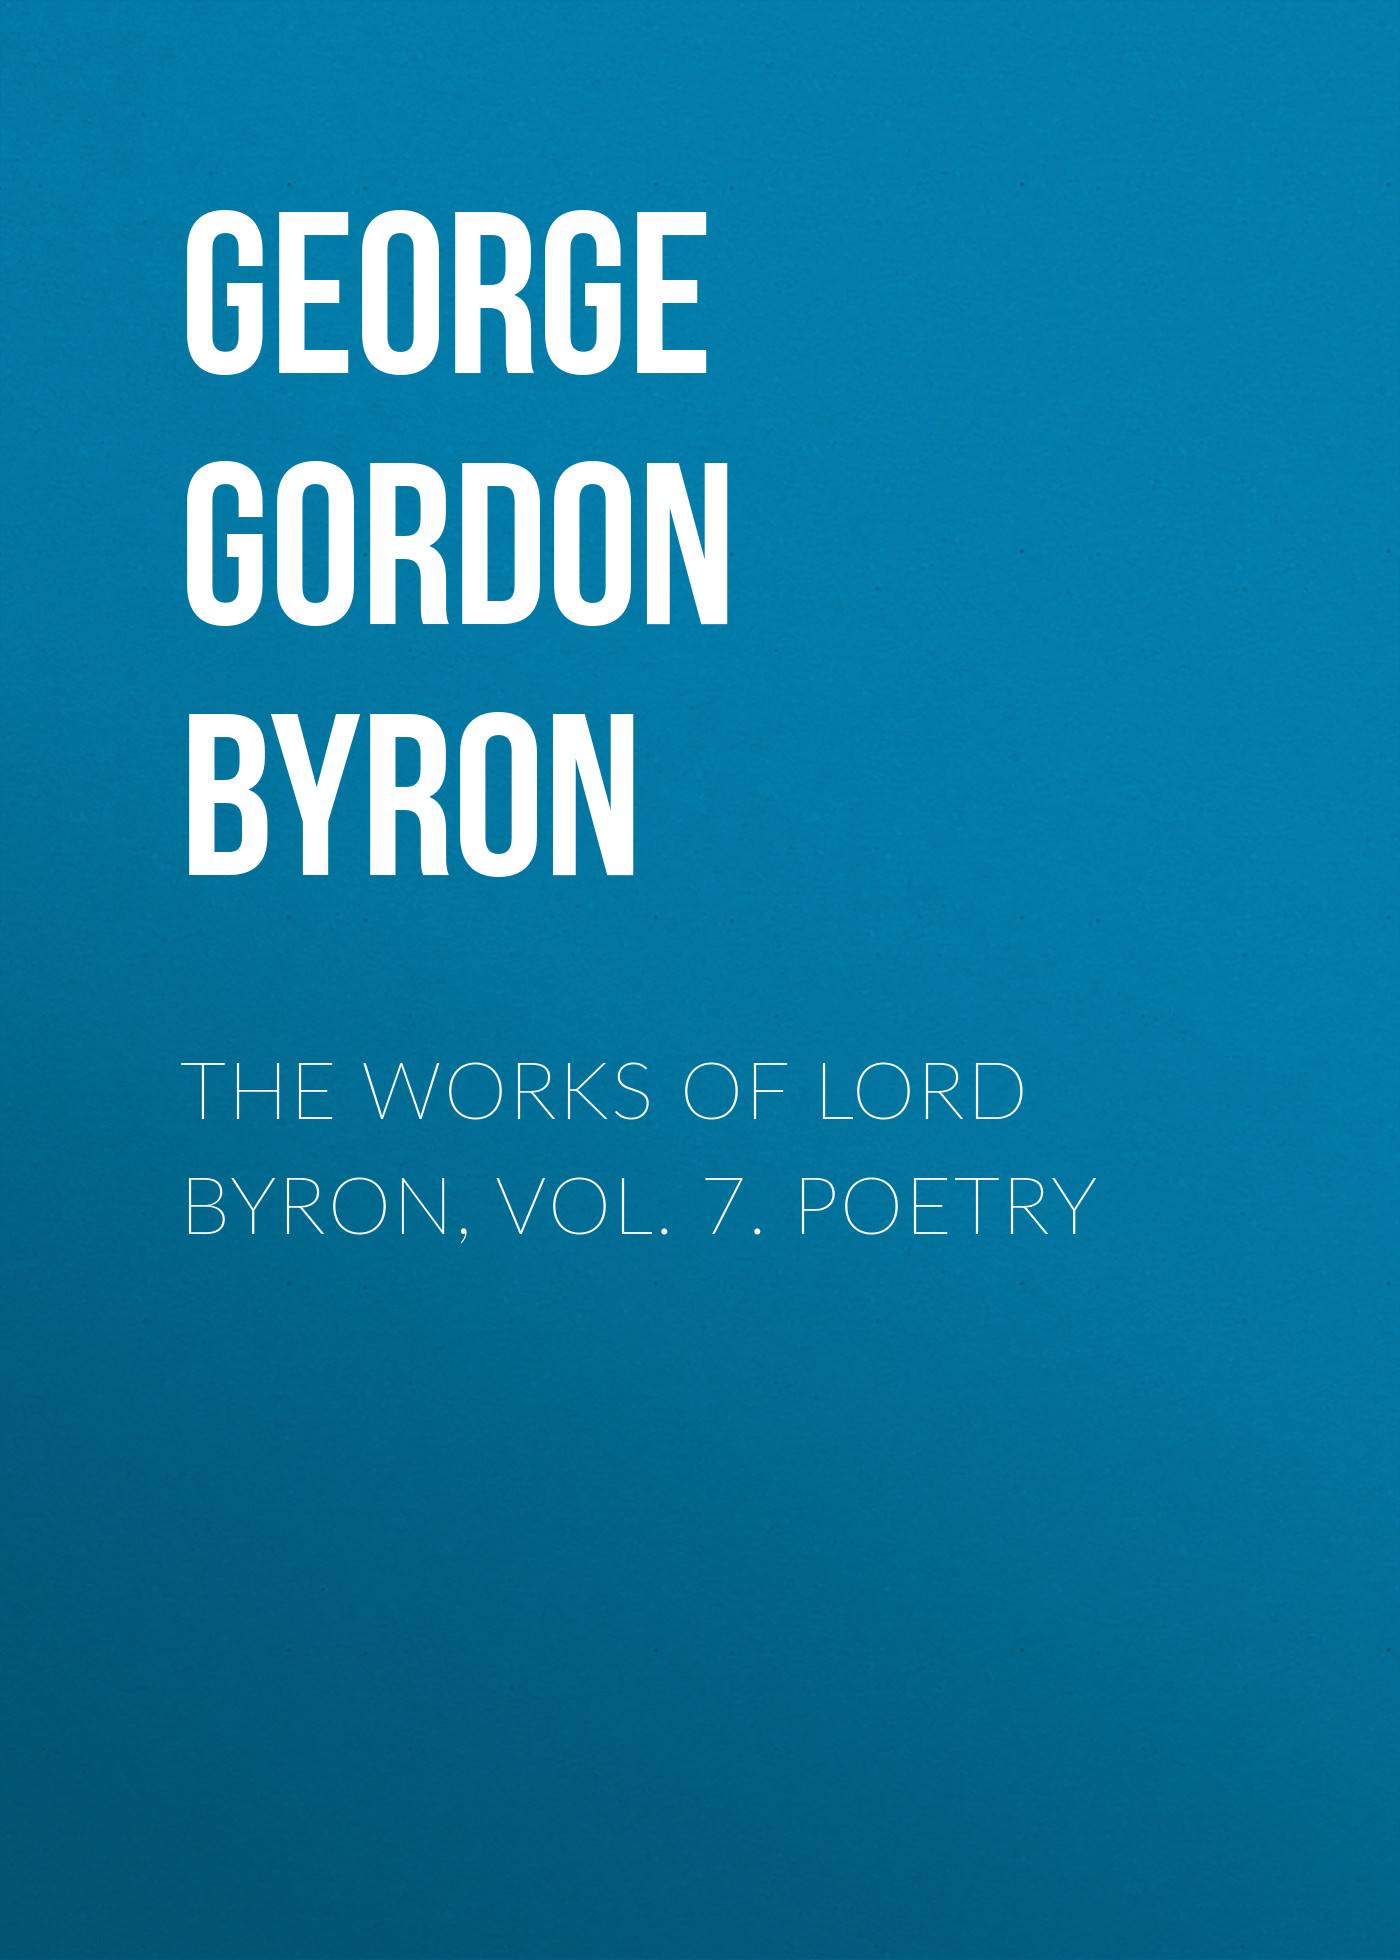 цена на Джордж Гордон Байрон The Works of Lord Byron, Vol. 7. Poetry